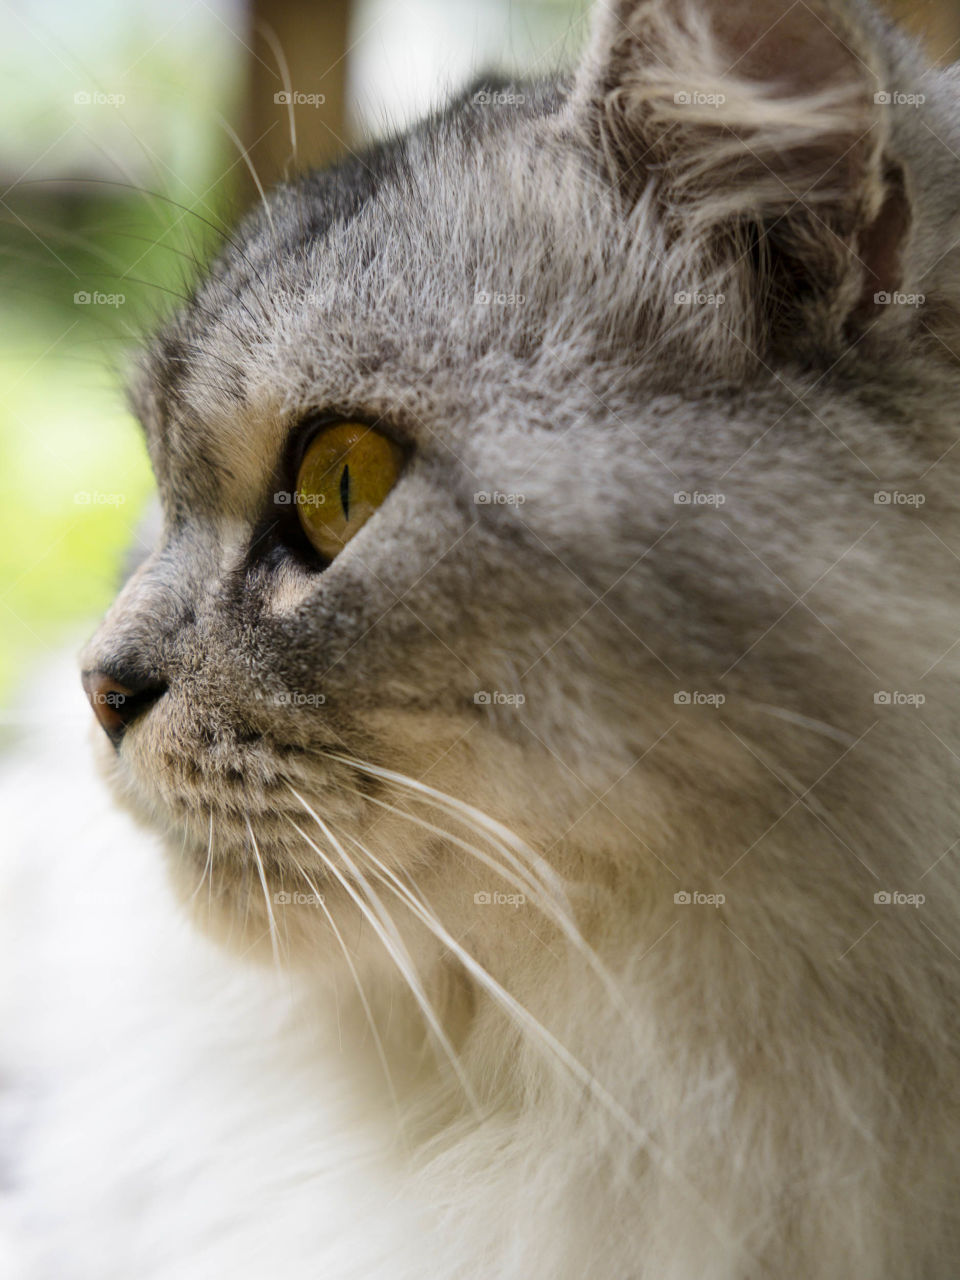 Extreme close-up of cat